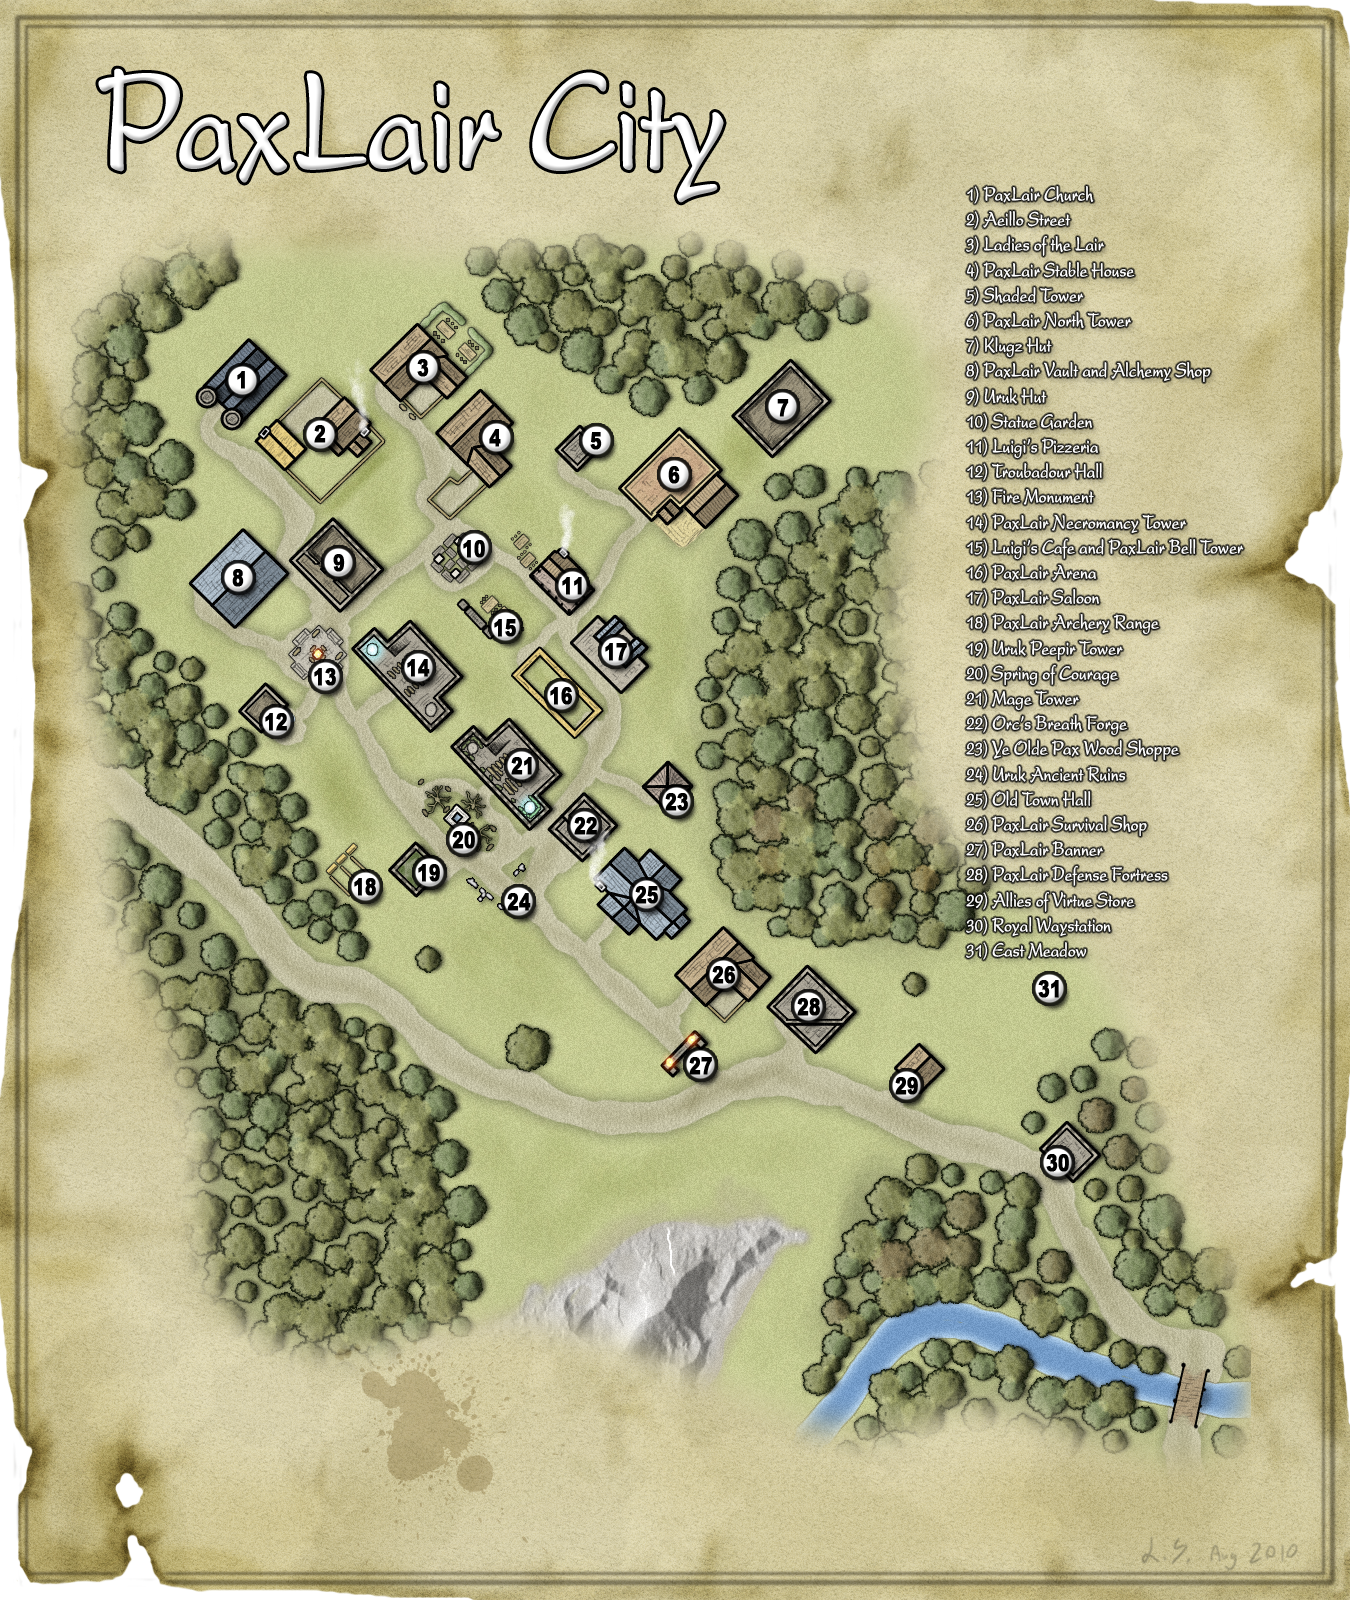 A plan view of PaxLair City as it looked in August, 2010.